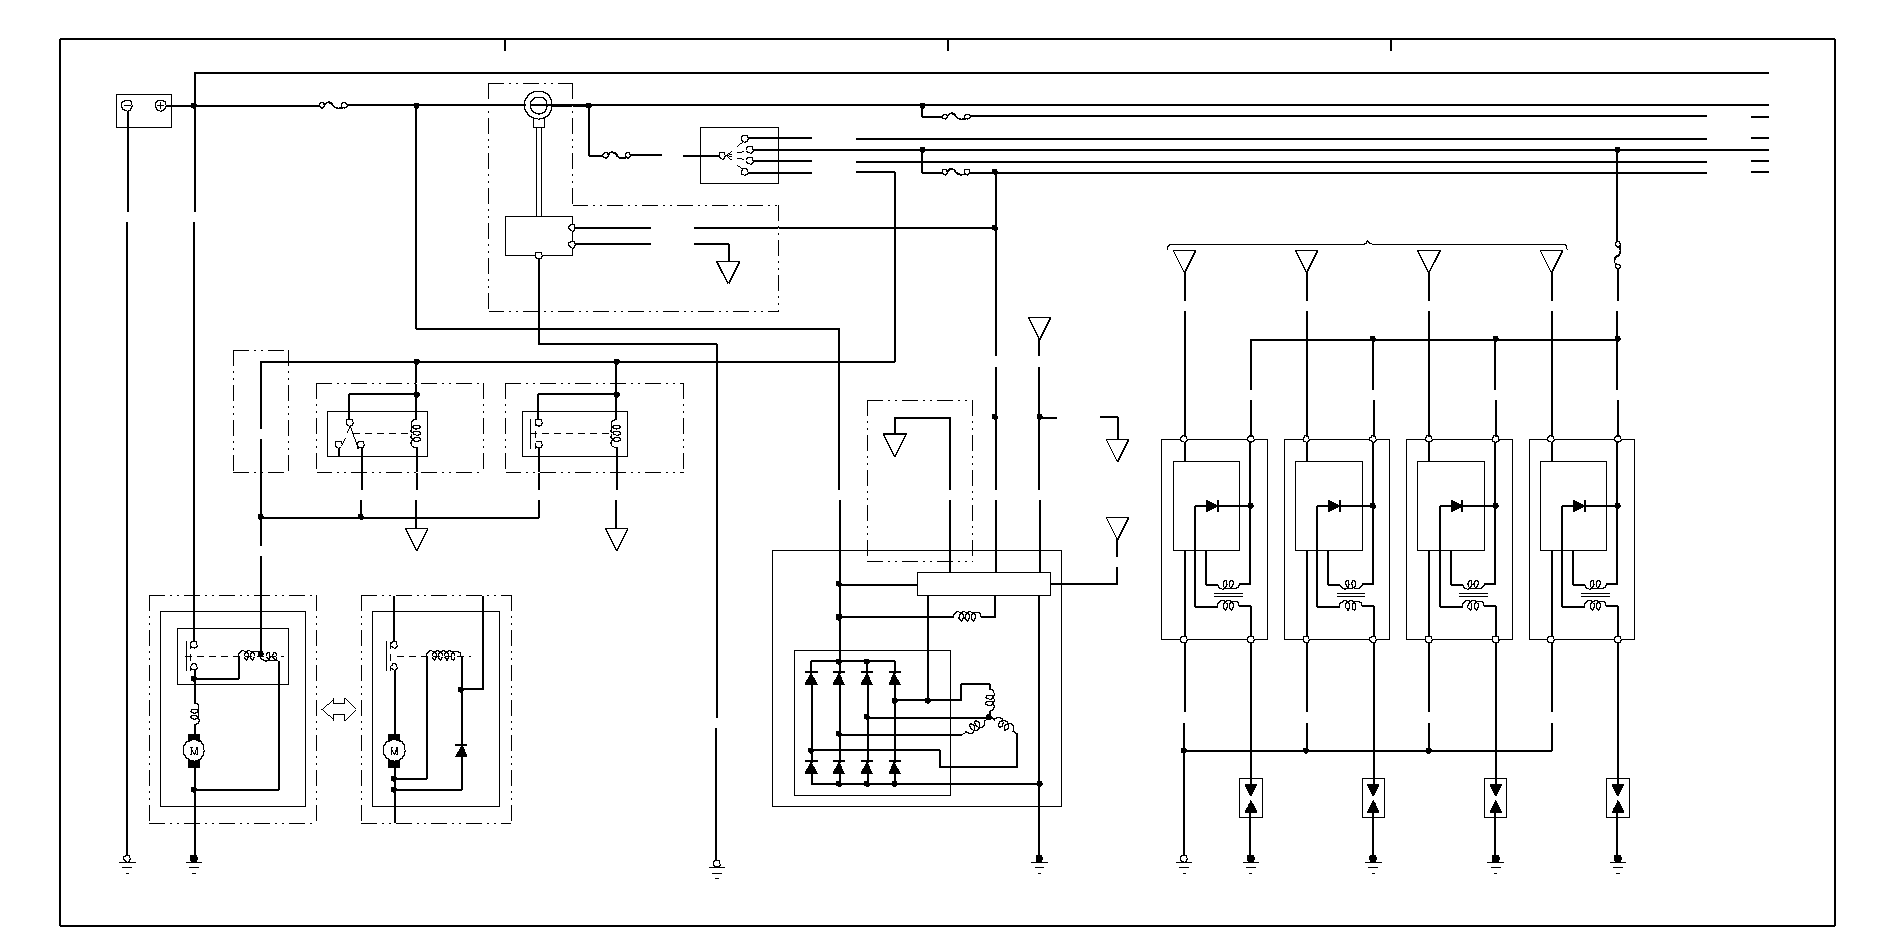 honda crv fuse box diagram 2006